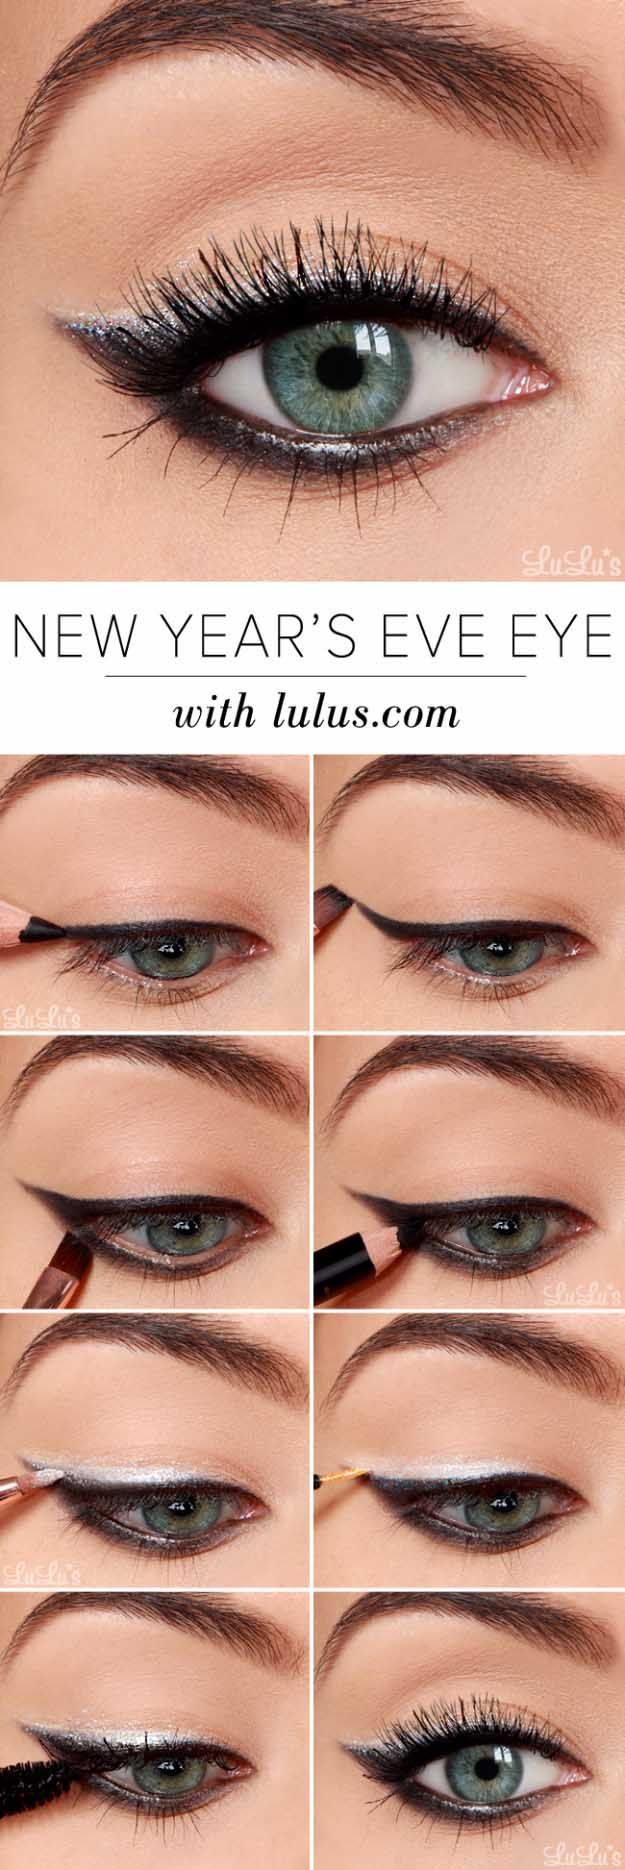 Eyeshadow Tutorials for Beginners - New Year�s Eve Eyeshadow Tutorial- Step By Step Tutorial Guides For Beginners with Green, Hazel, Blue and For Brown Eyes - Matte, Natural and Everyday Looks That Are Sure to Impress - Even an Awesoem Video on a Dramatic